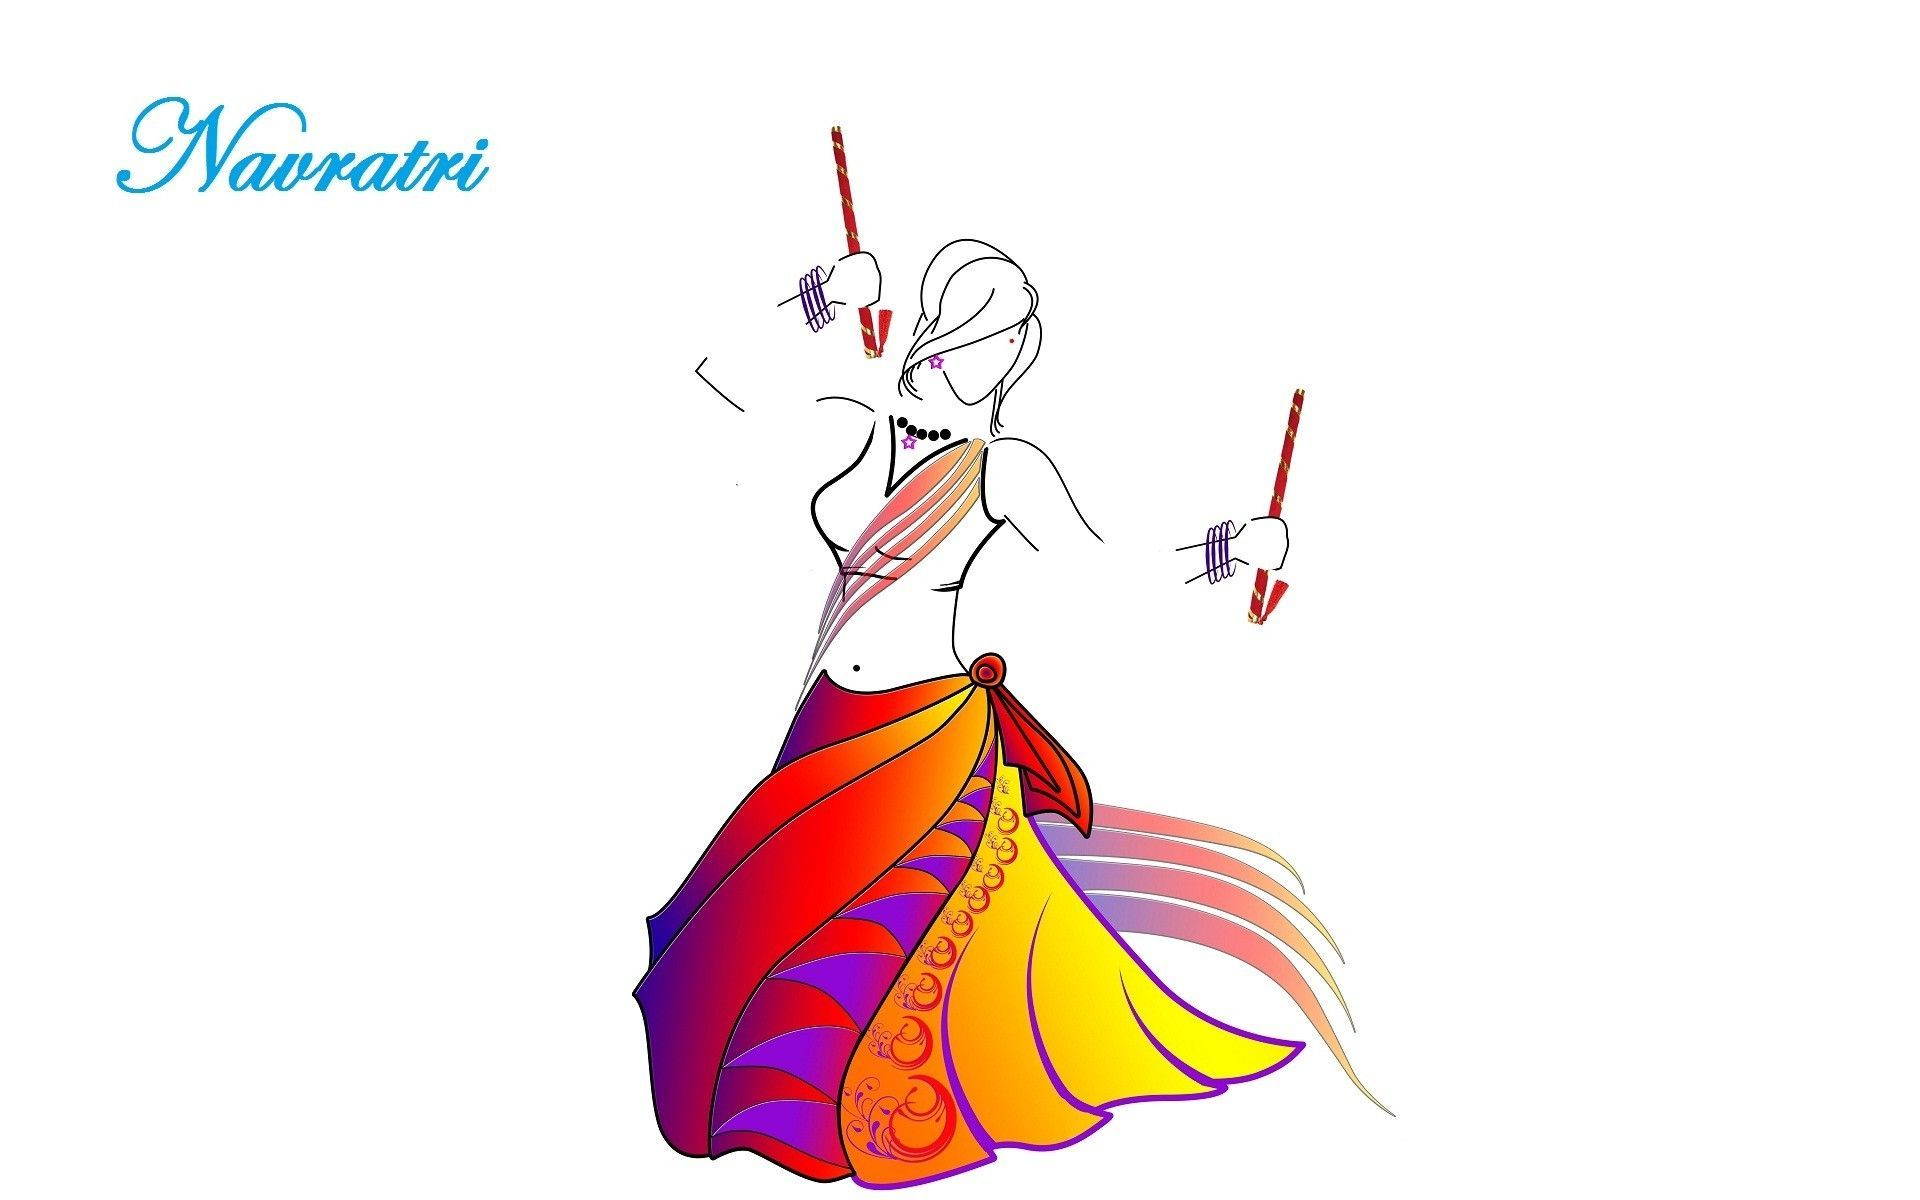 2016 clipart navratri, 2016 navratri Transparent FREE for.